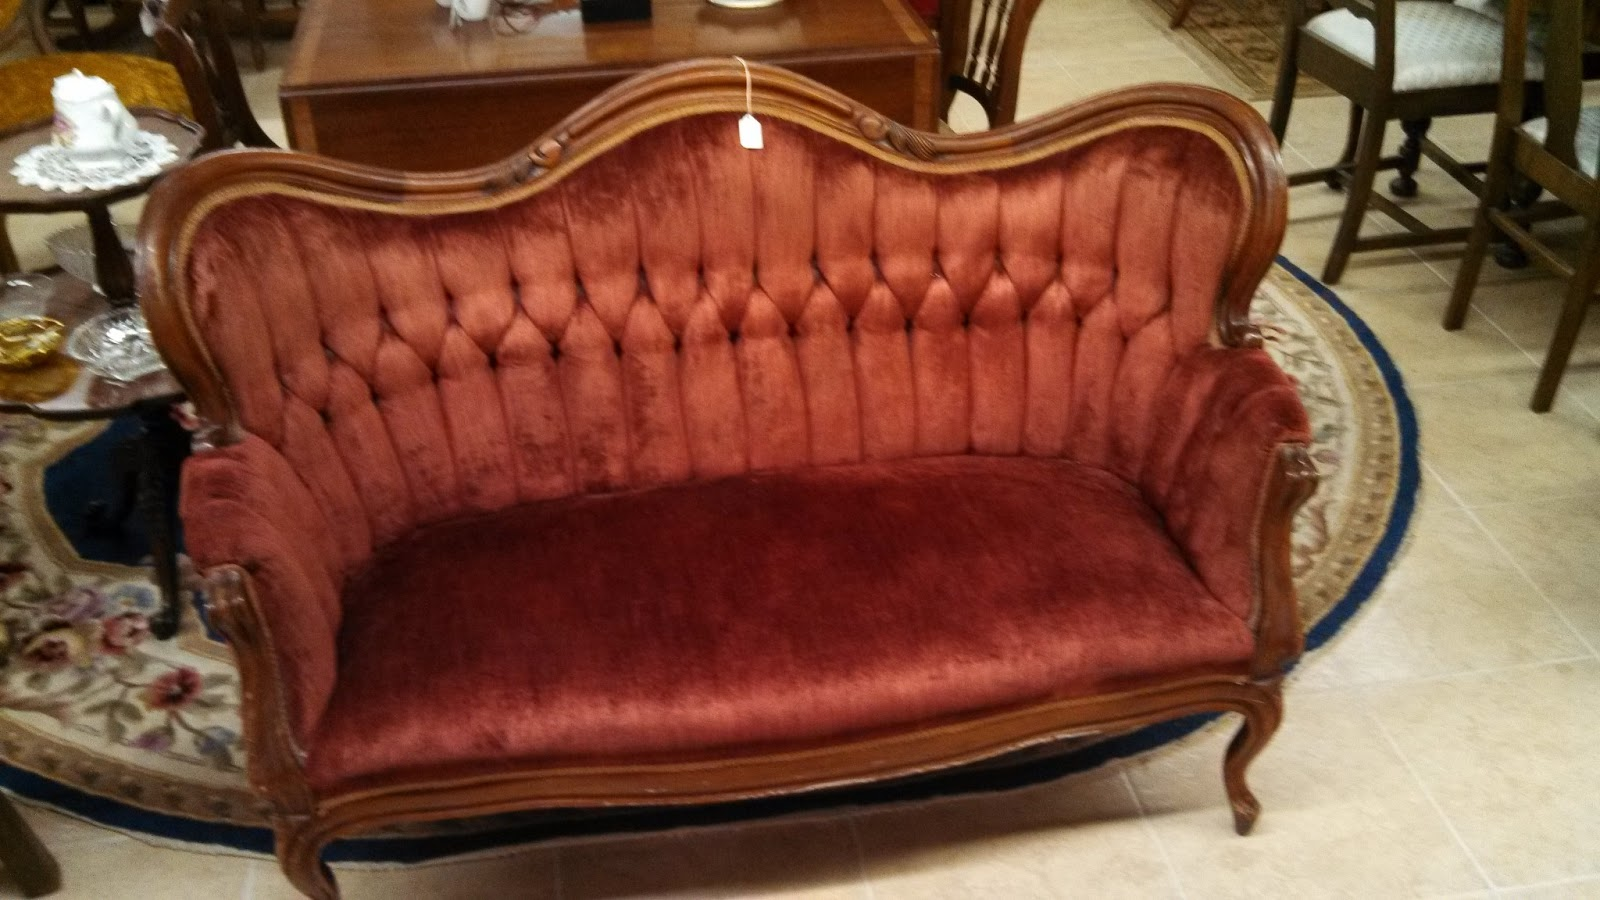 Turn of the century furniture - We Just Received This Couch Which Is A Good Example Of The Early 20th Century Furniture This Is A Circa 1900 S Lovely Couch